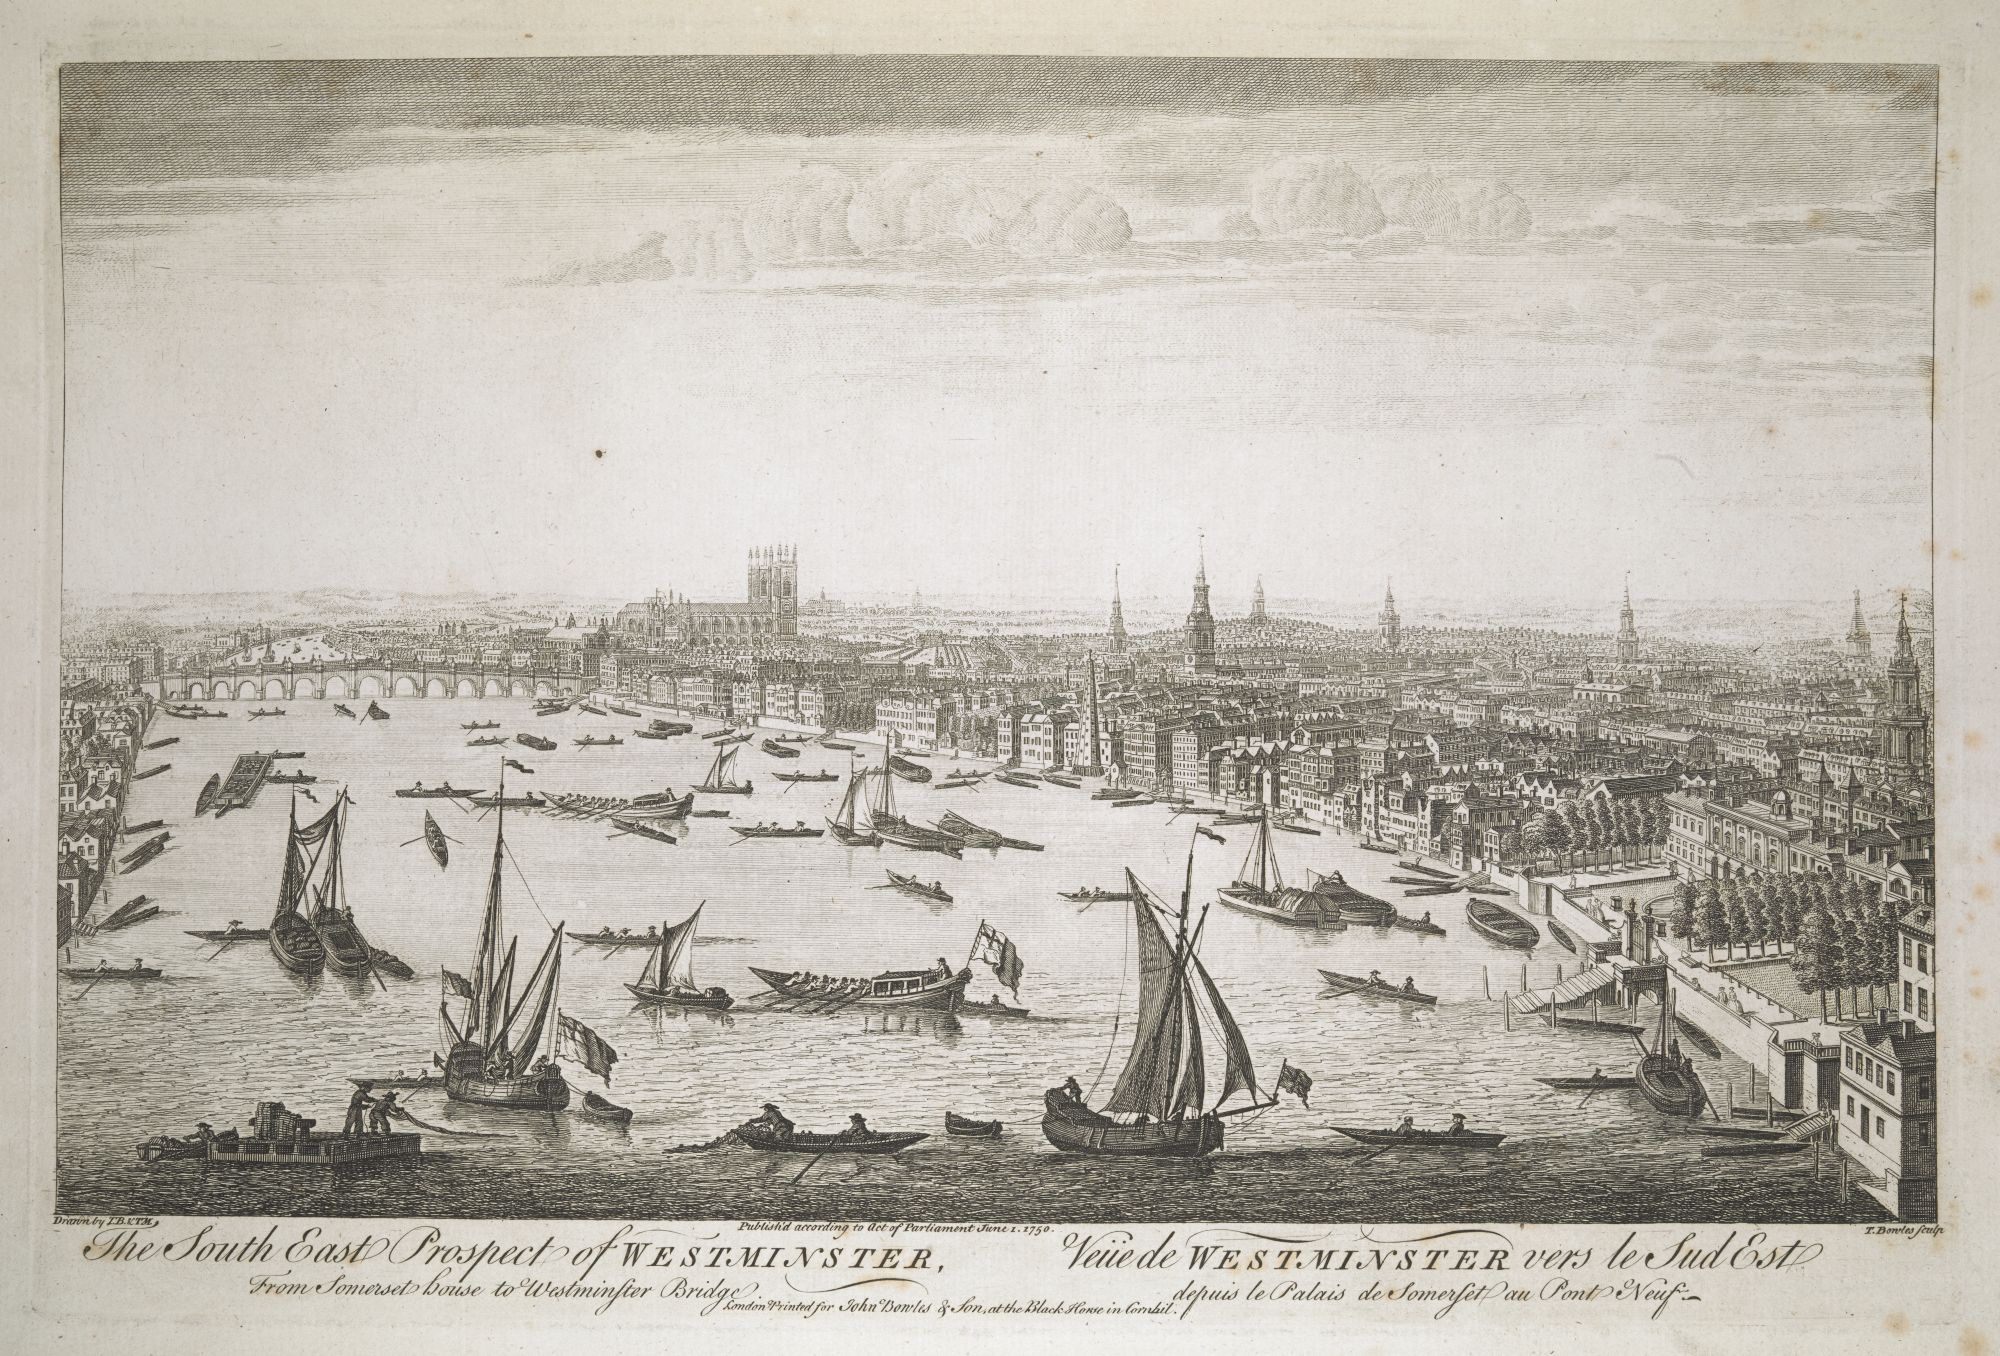 The South East Prospect of Westminster, from Somerset house to Westminster Bridge, by Thomas Bowles and Thomas Mellish.